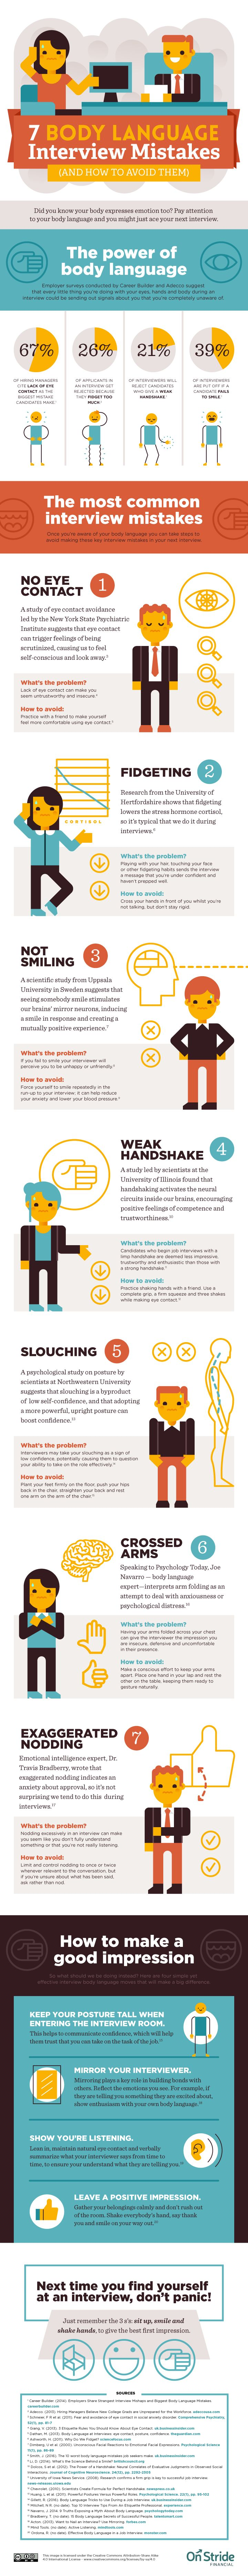 This infographic lays out nine techniques to improve your interview body language so that you're ready to open that door and make a great first impression.